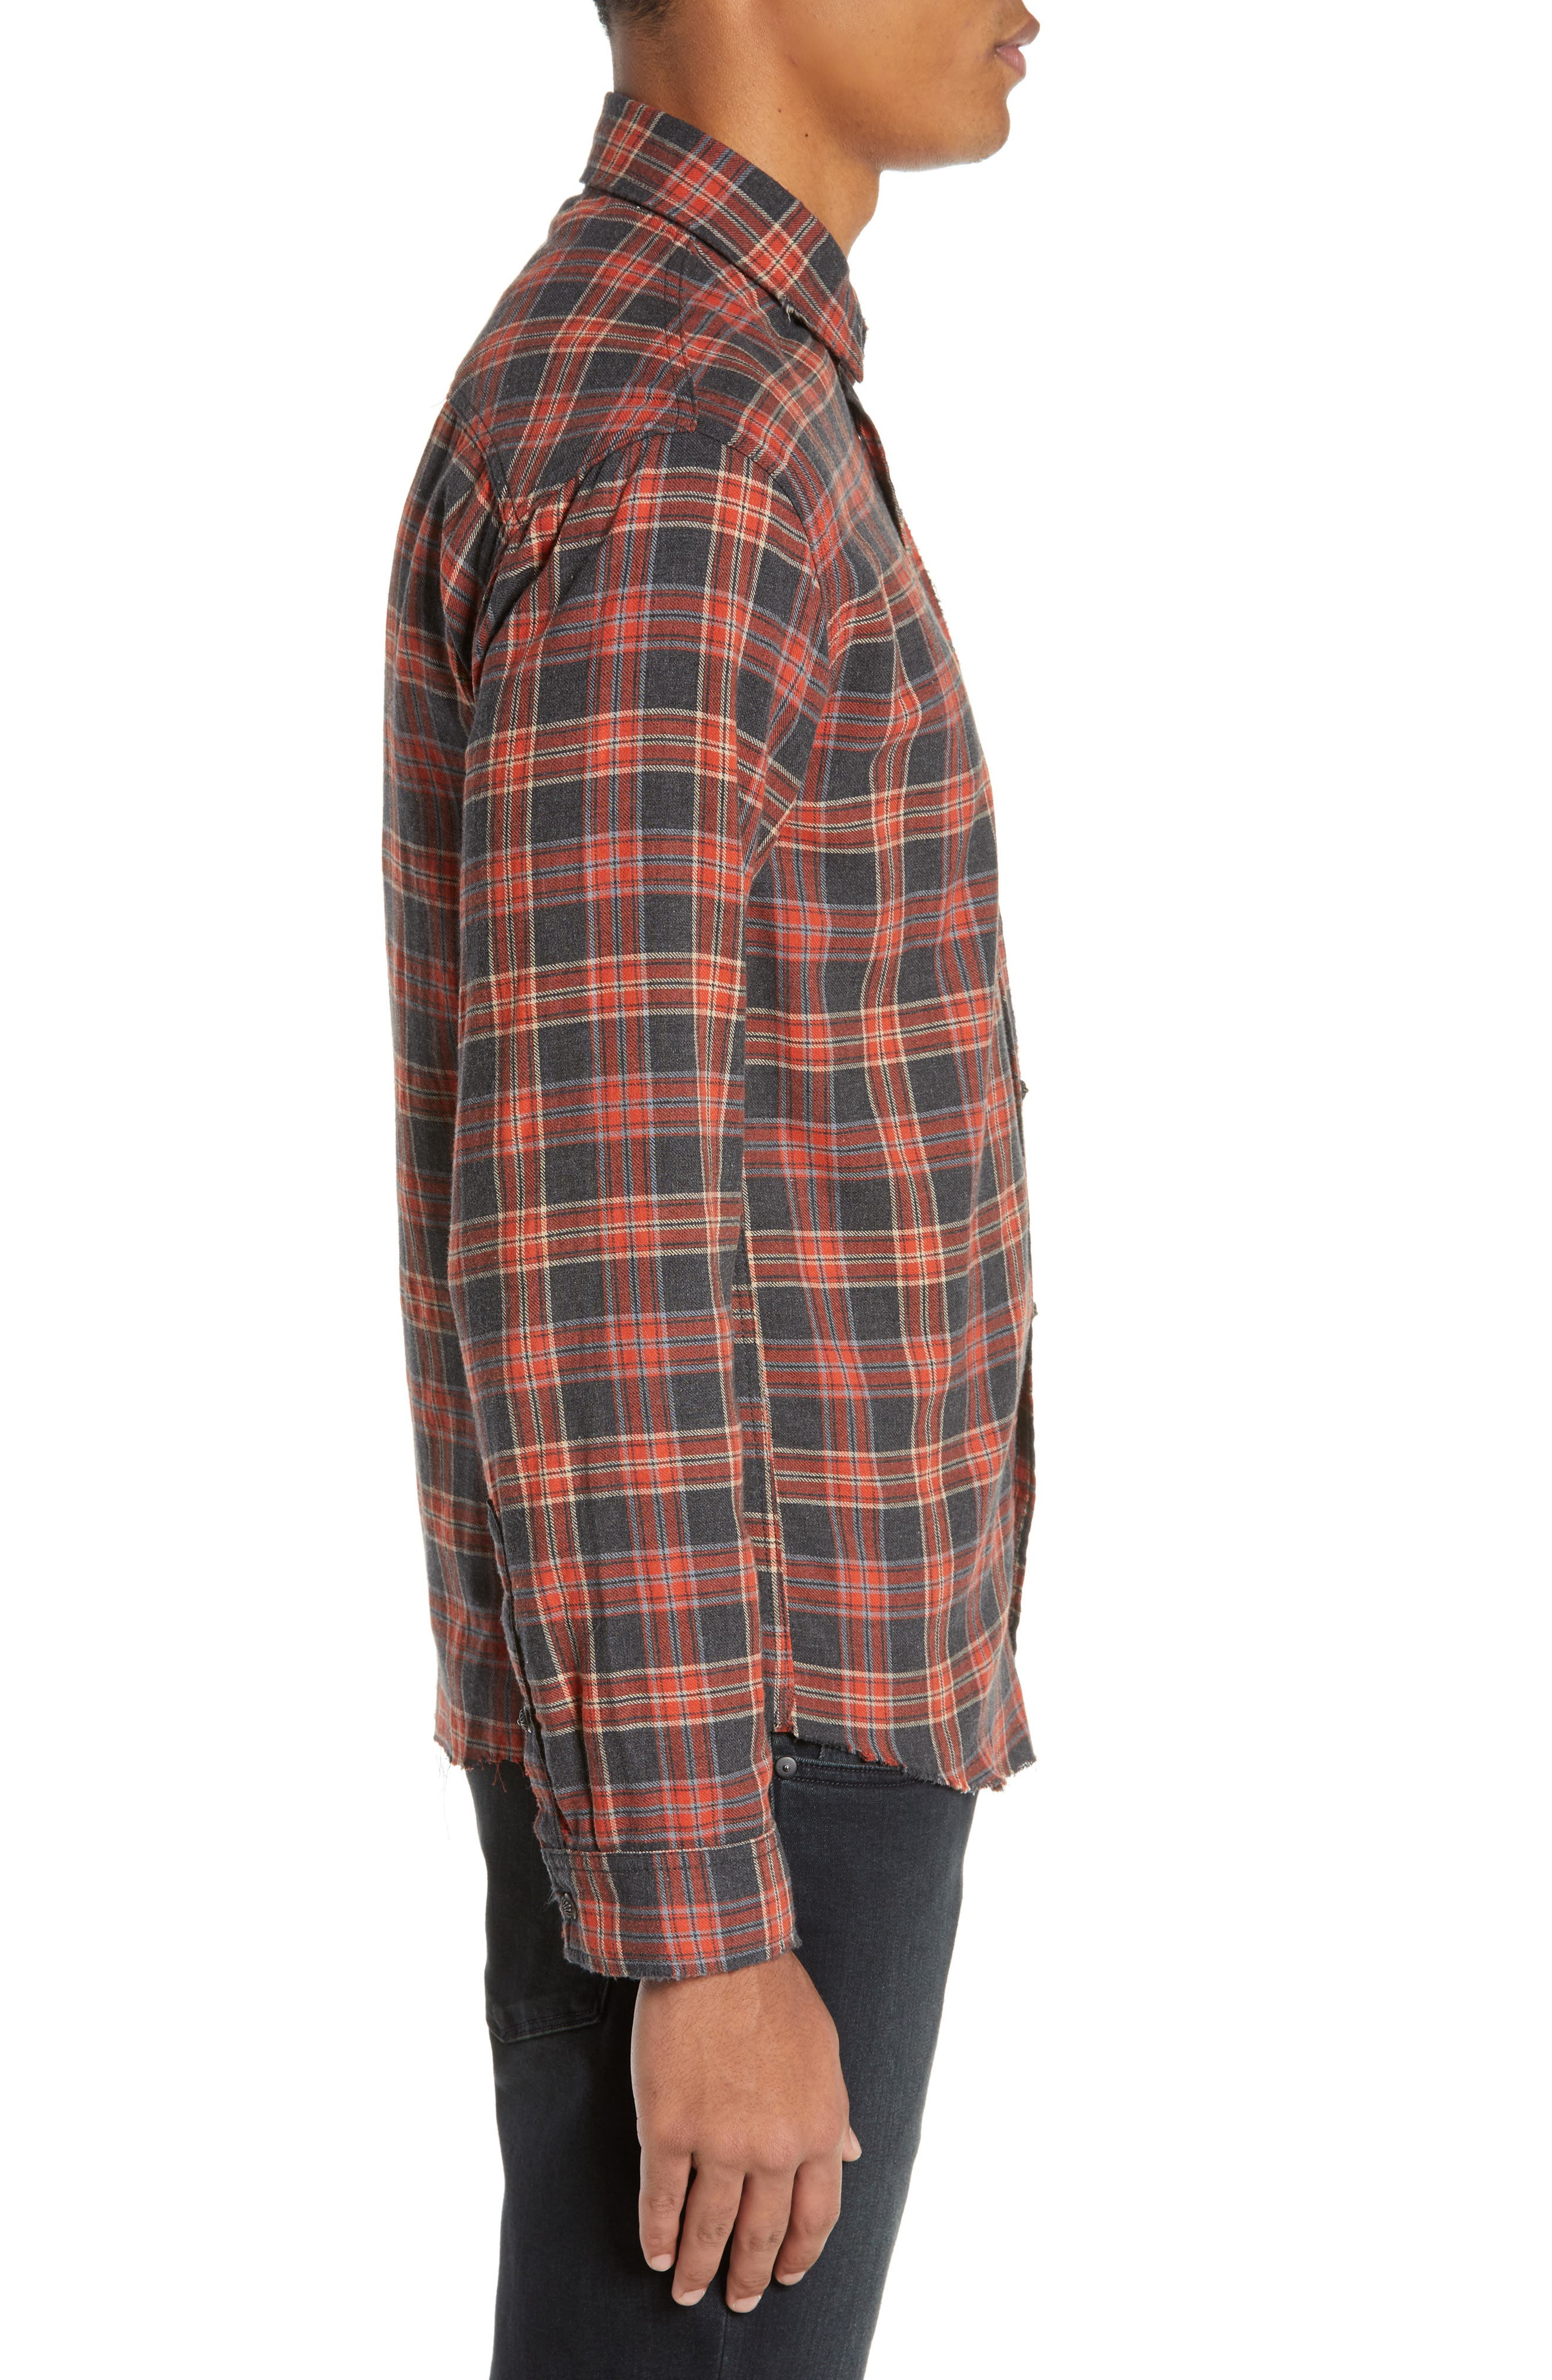 THE KOOPLES, Plaid Regular Fit Flannel Shirt, Alternate thumbnail 4, color, 800